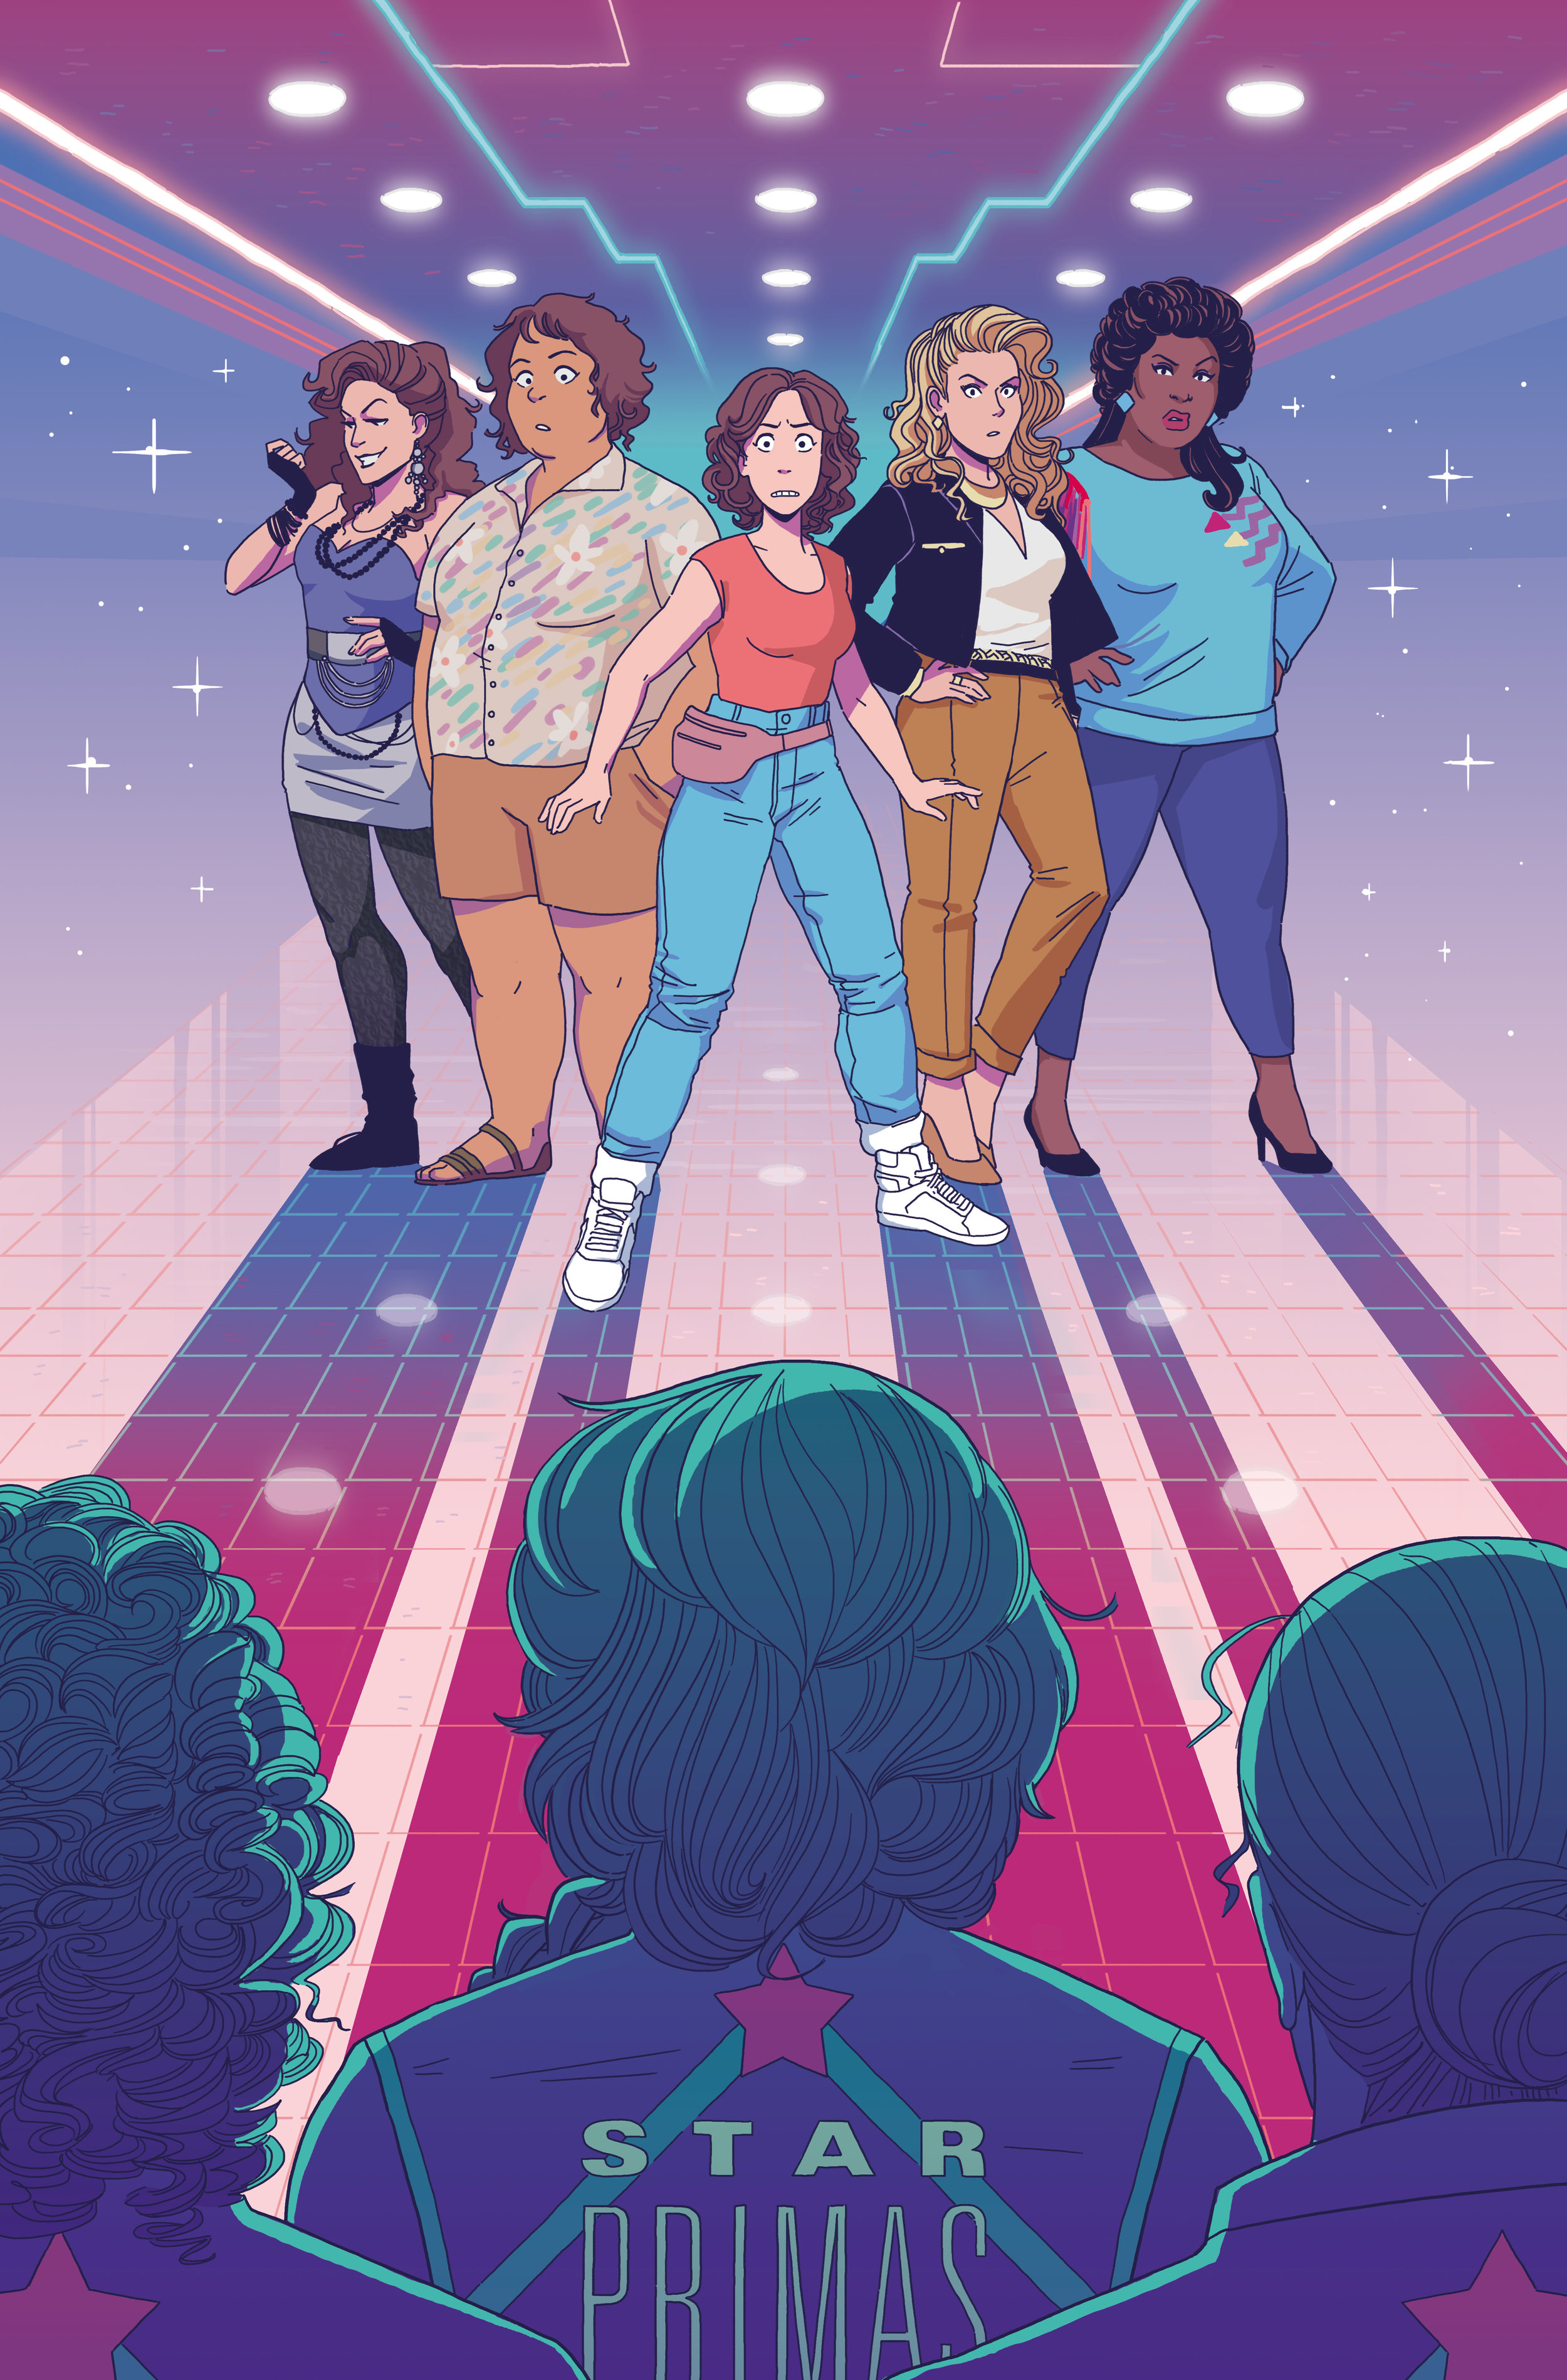 Cover  - GLOW #2  - IDW   View Interview »